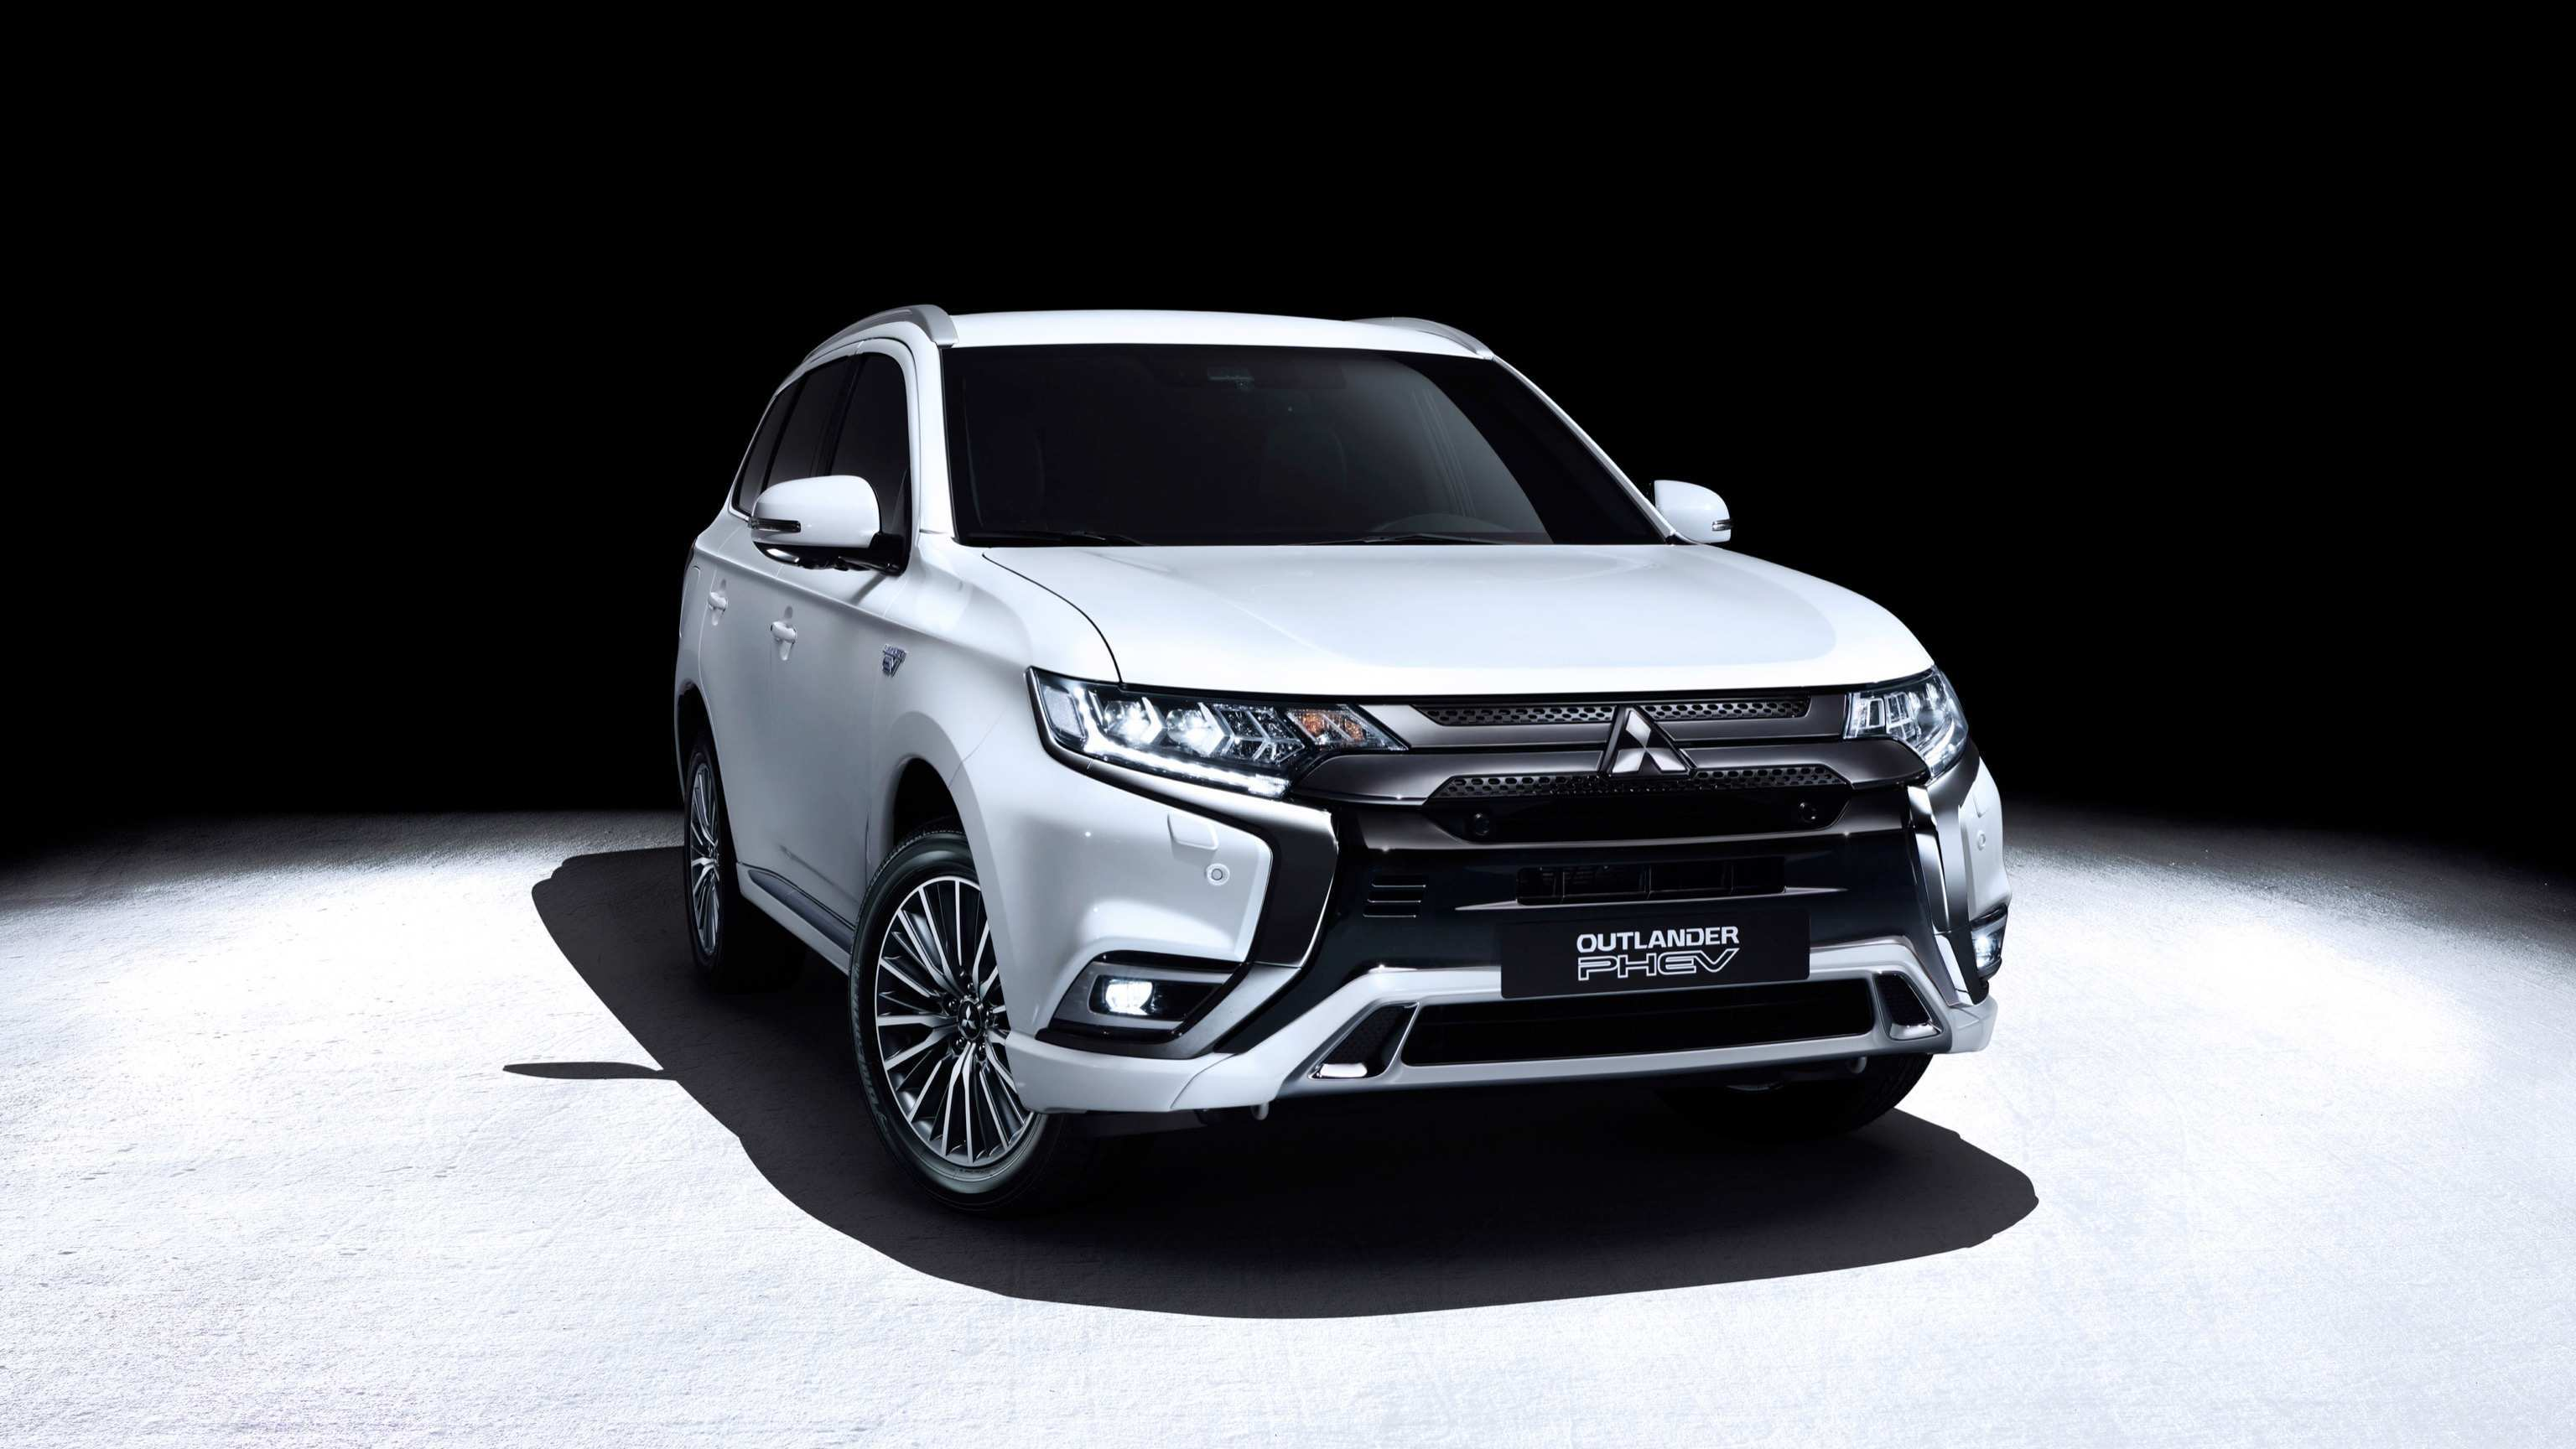 38 Best Review Mitsubishi Outlander Wegenbelasting 2020 Model for Mitsubishi Outlander Wegenbelasting 2020